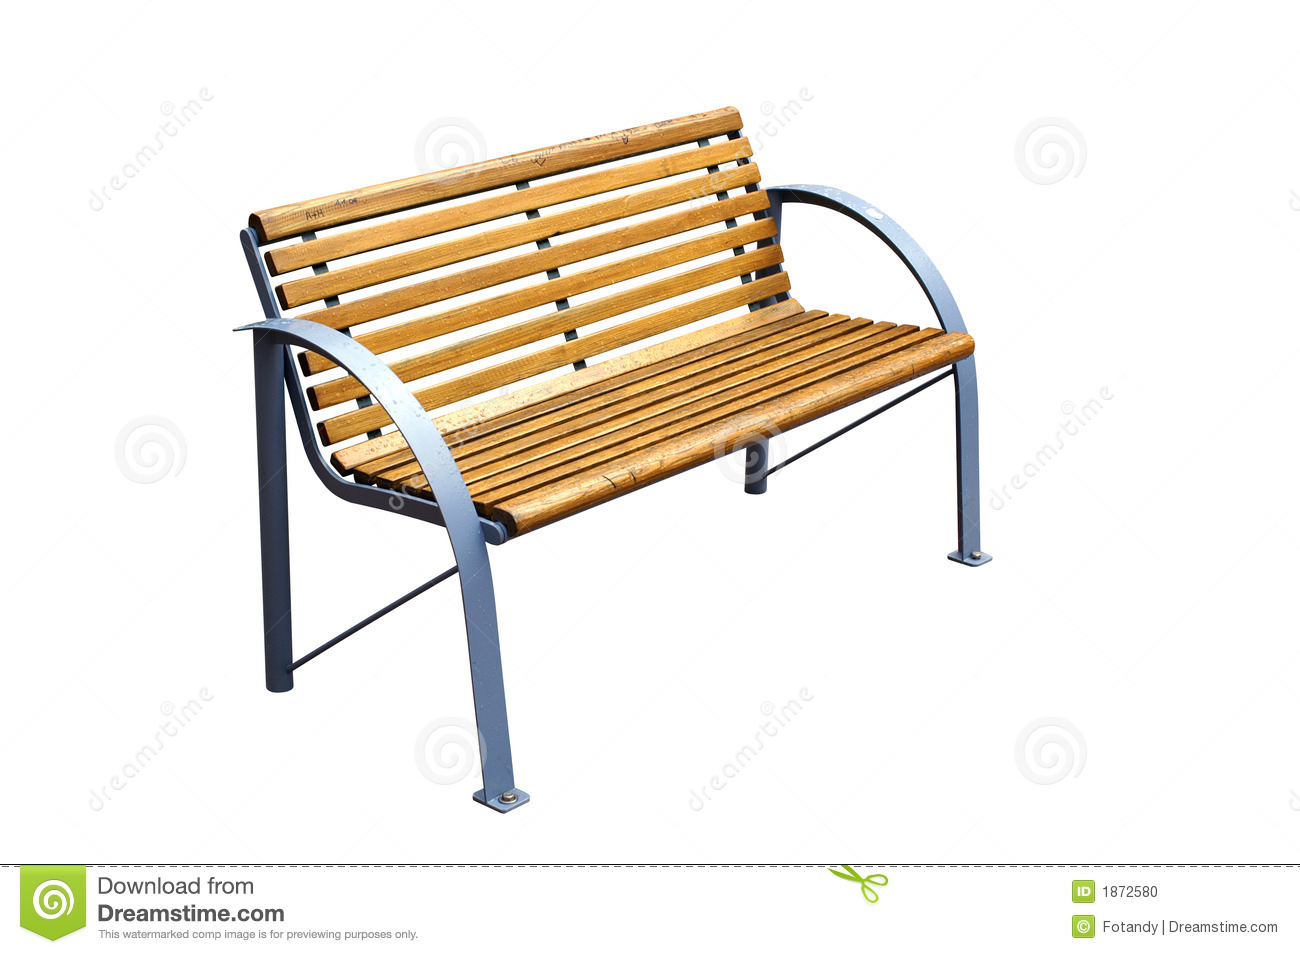 More similar stock images of ` Bench isolated `